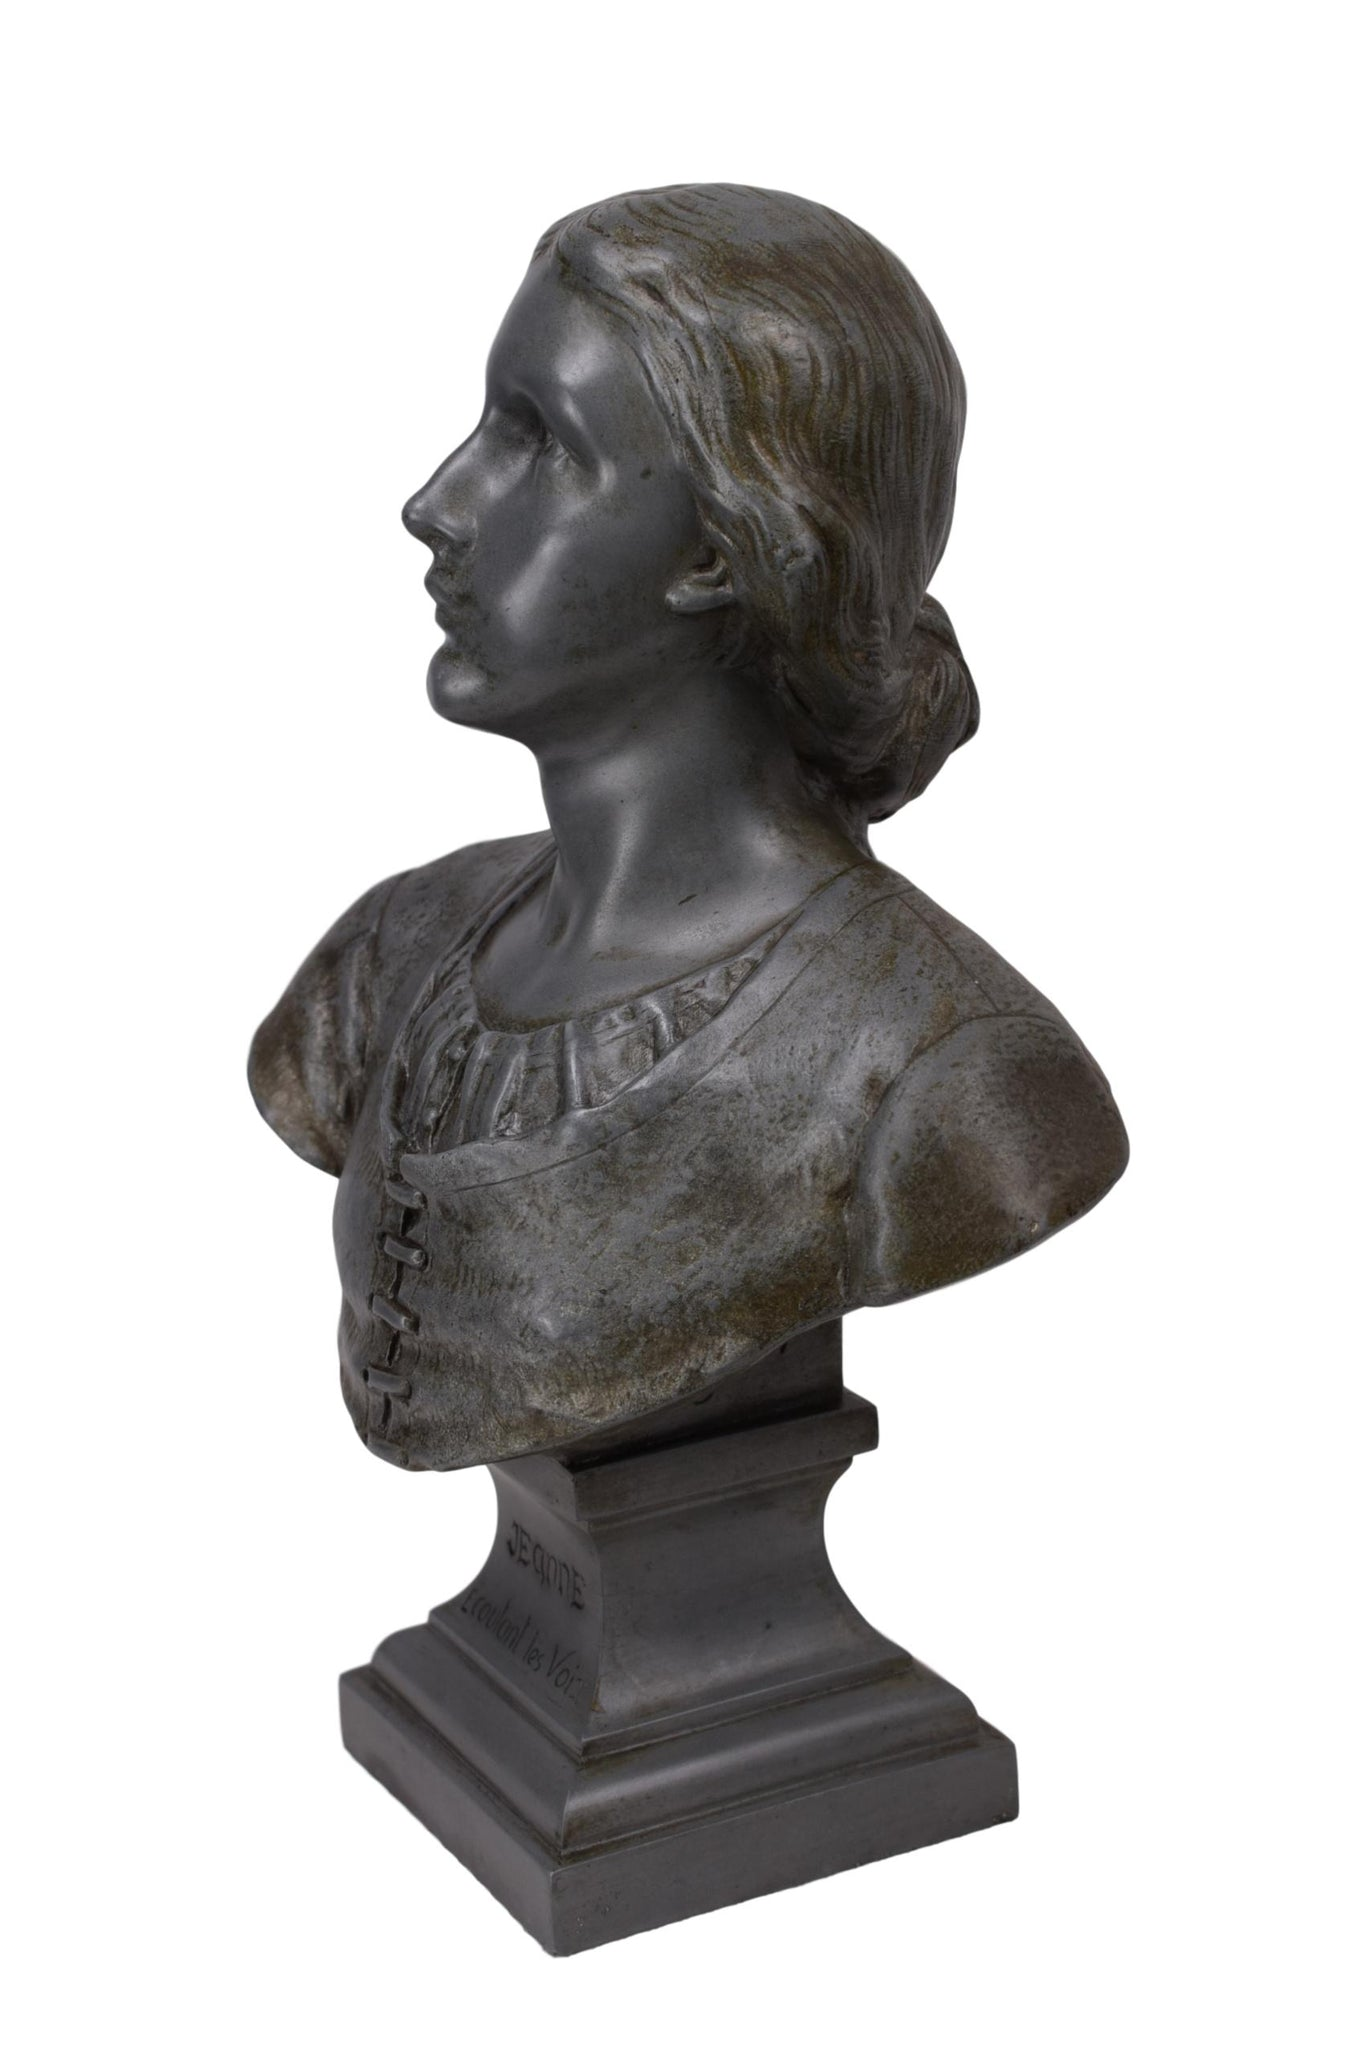 Saint Joan of Arc Pewter Bust by François-Charles de Franoz, Joan of Arc Listening to the Voices Statue, Art Nouveau Joan of Arc Sculpture